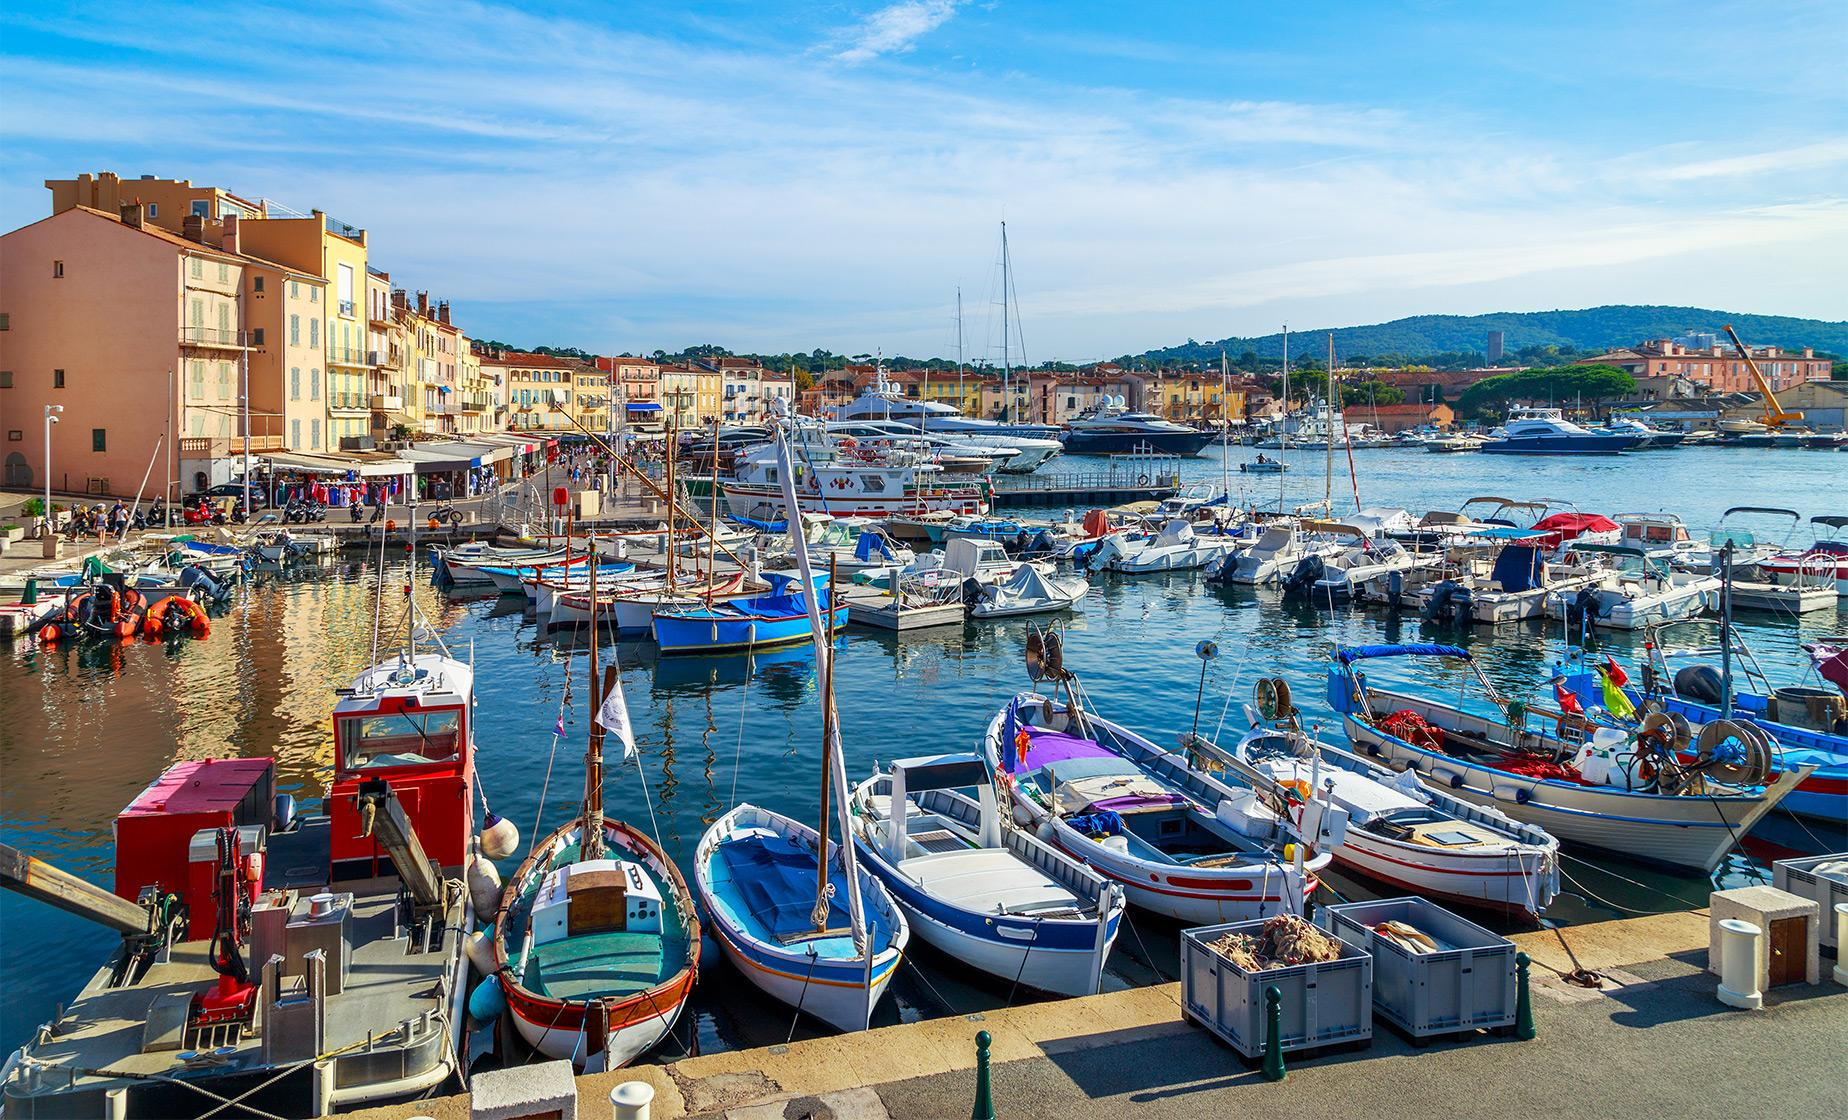 Saint Tropez and Port Grimaud Tour from Nice (Esterel, Little Venice)